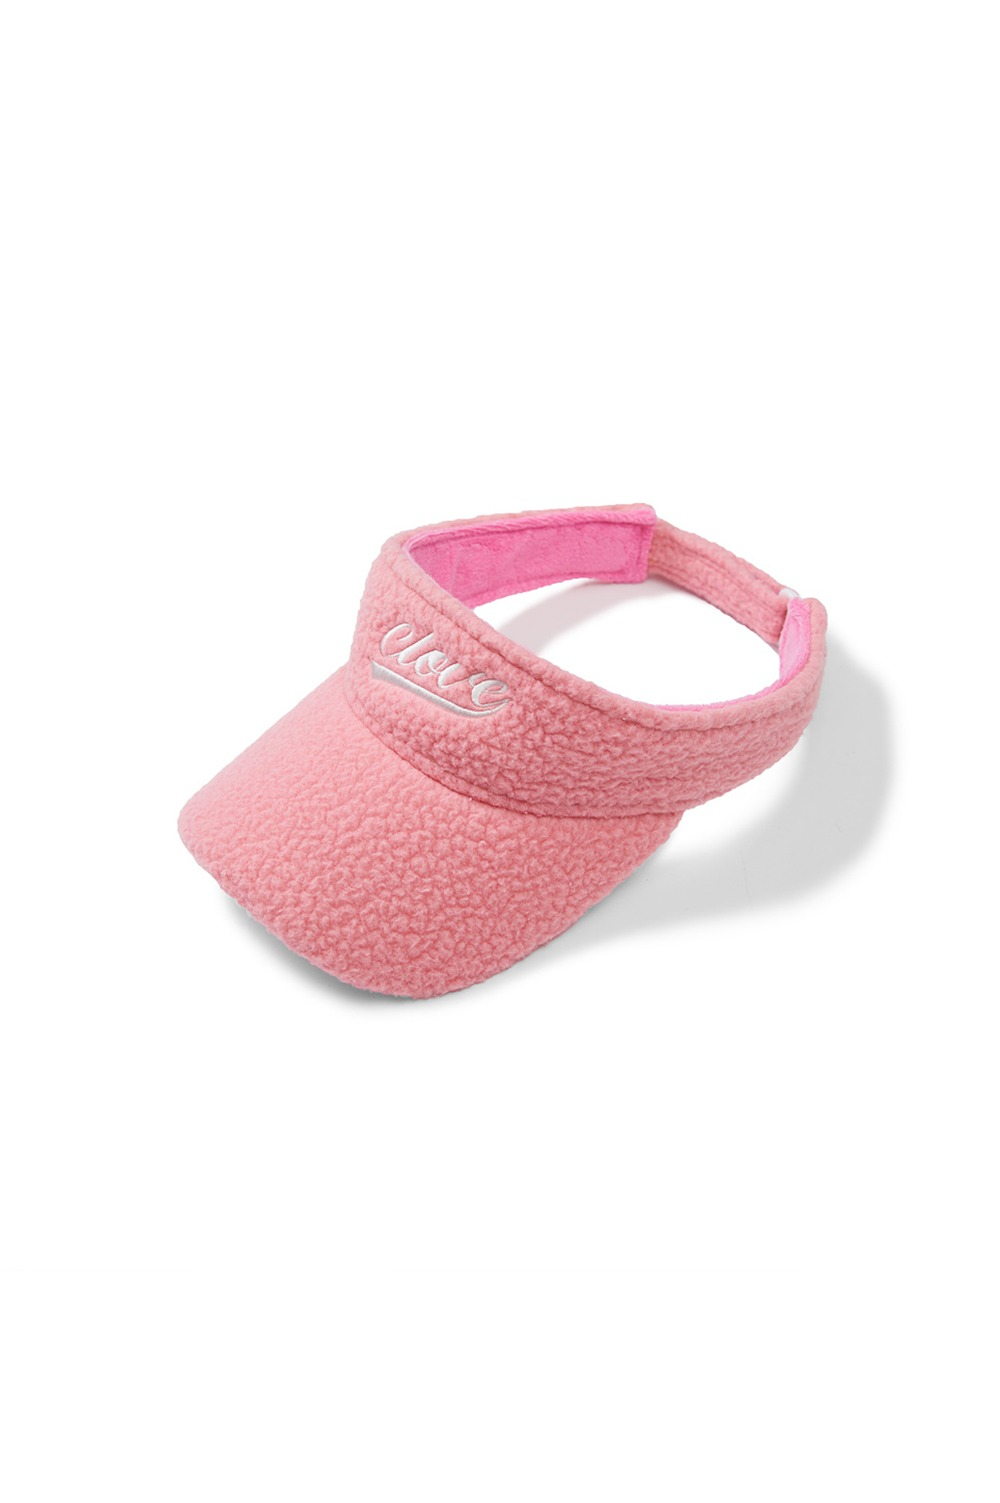 [차정원 착용] Fleece Sun Visor (Pink)